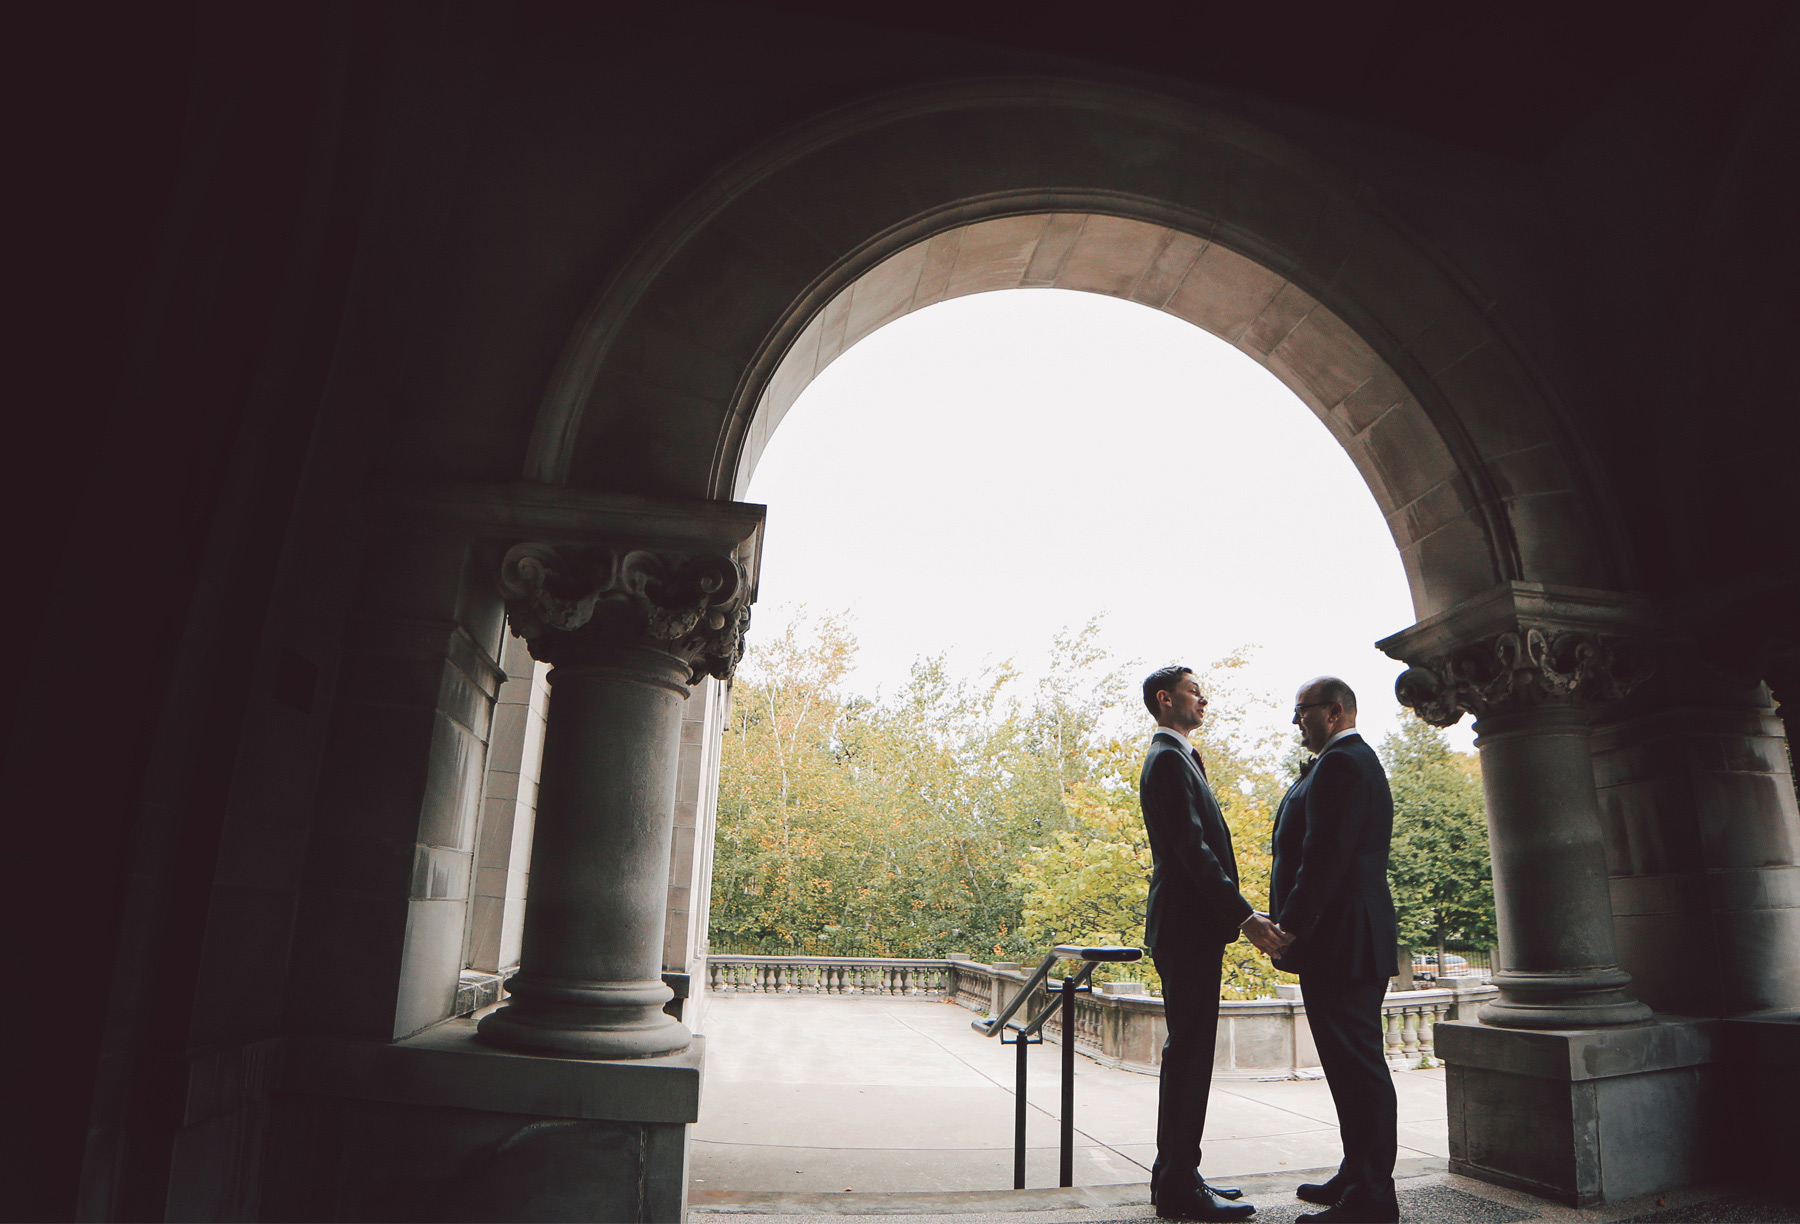 03-Minneapolis-Minnesota-Wedding-Photographer-by-Andrew-Vick-Photography-Fall-Autumn-American-Swedish-Institute-First-Meeting-Look-Groom-Vintage-Ben-and-Adam.jpg